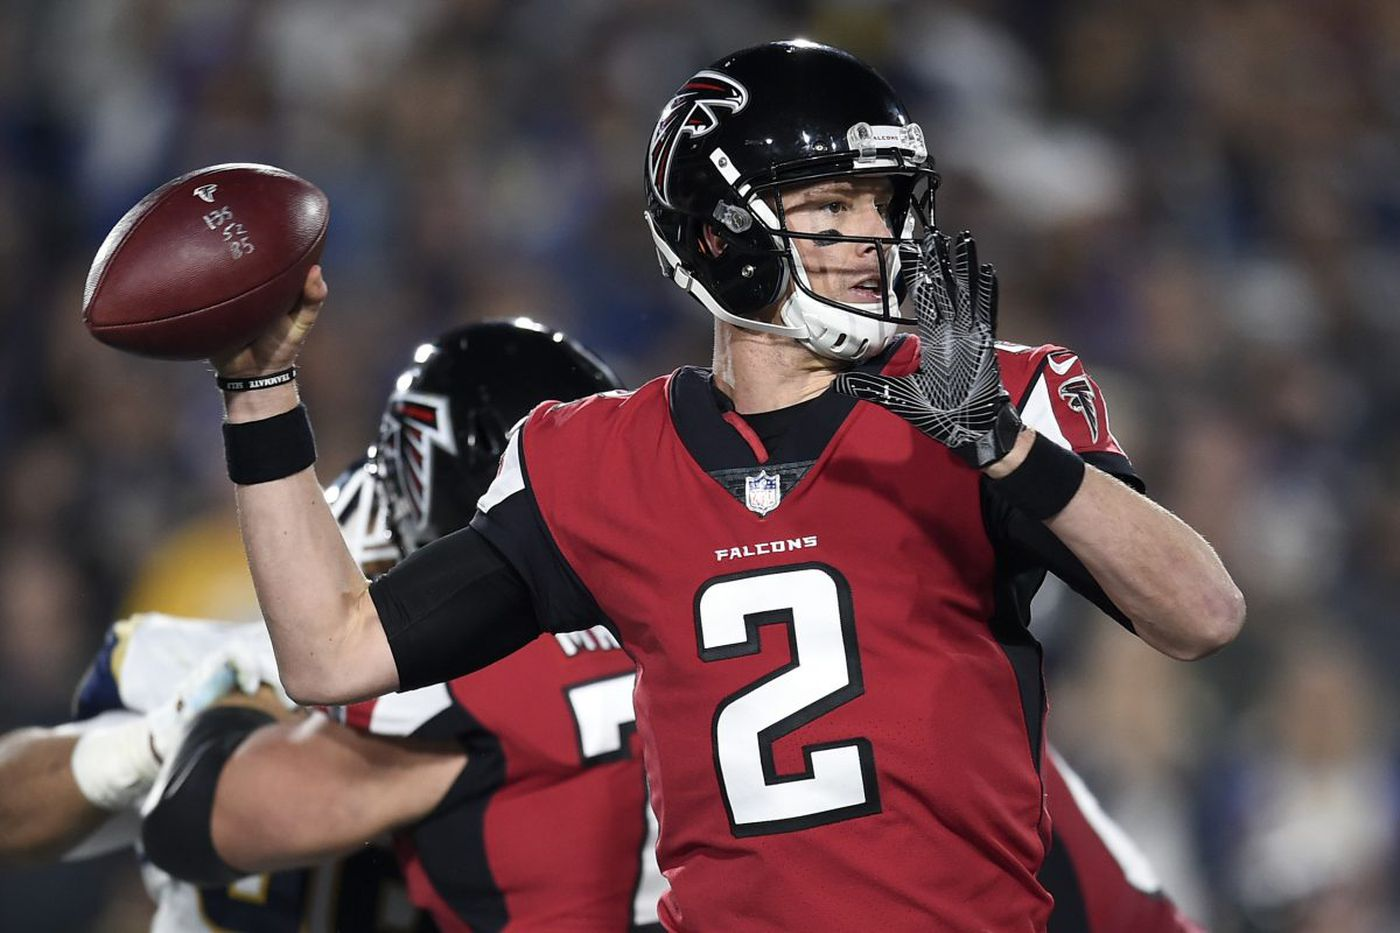 Falcons beat Rams, will play Eagles next Saturday